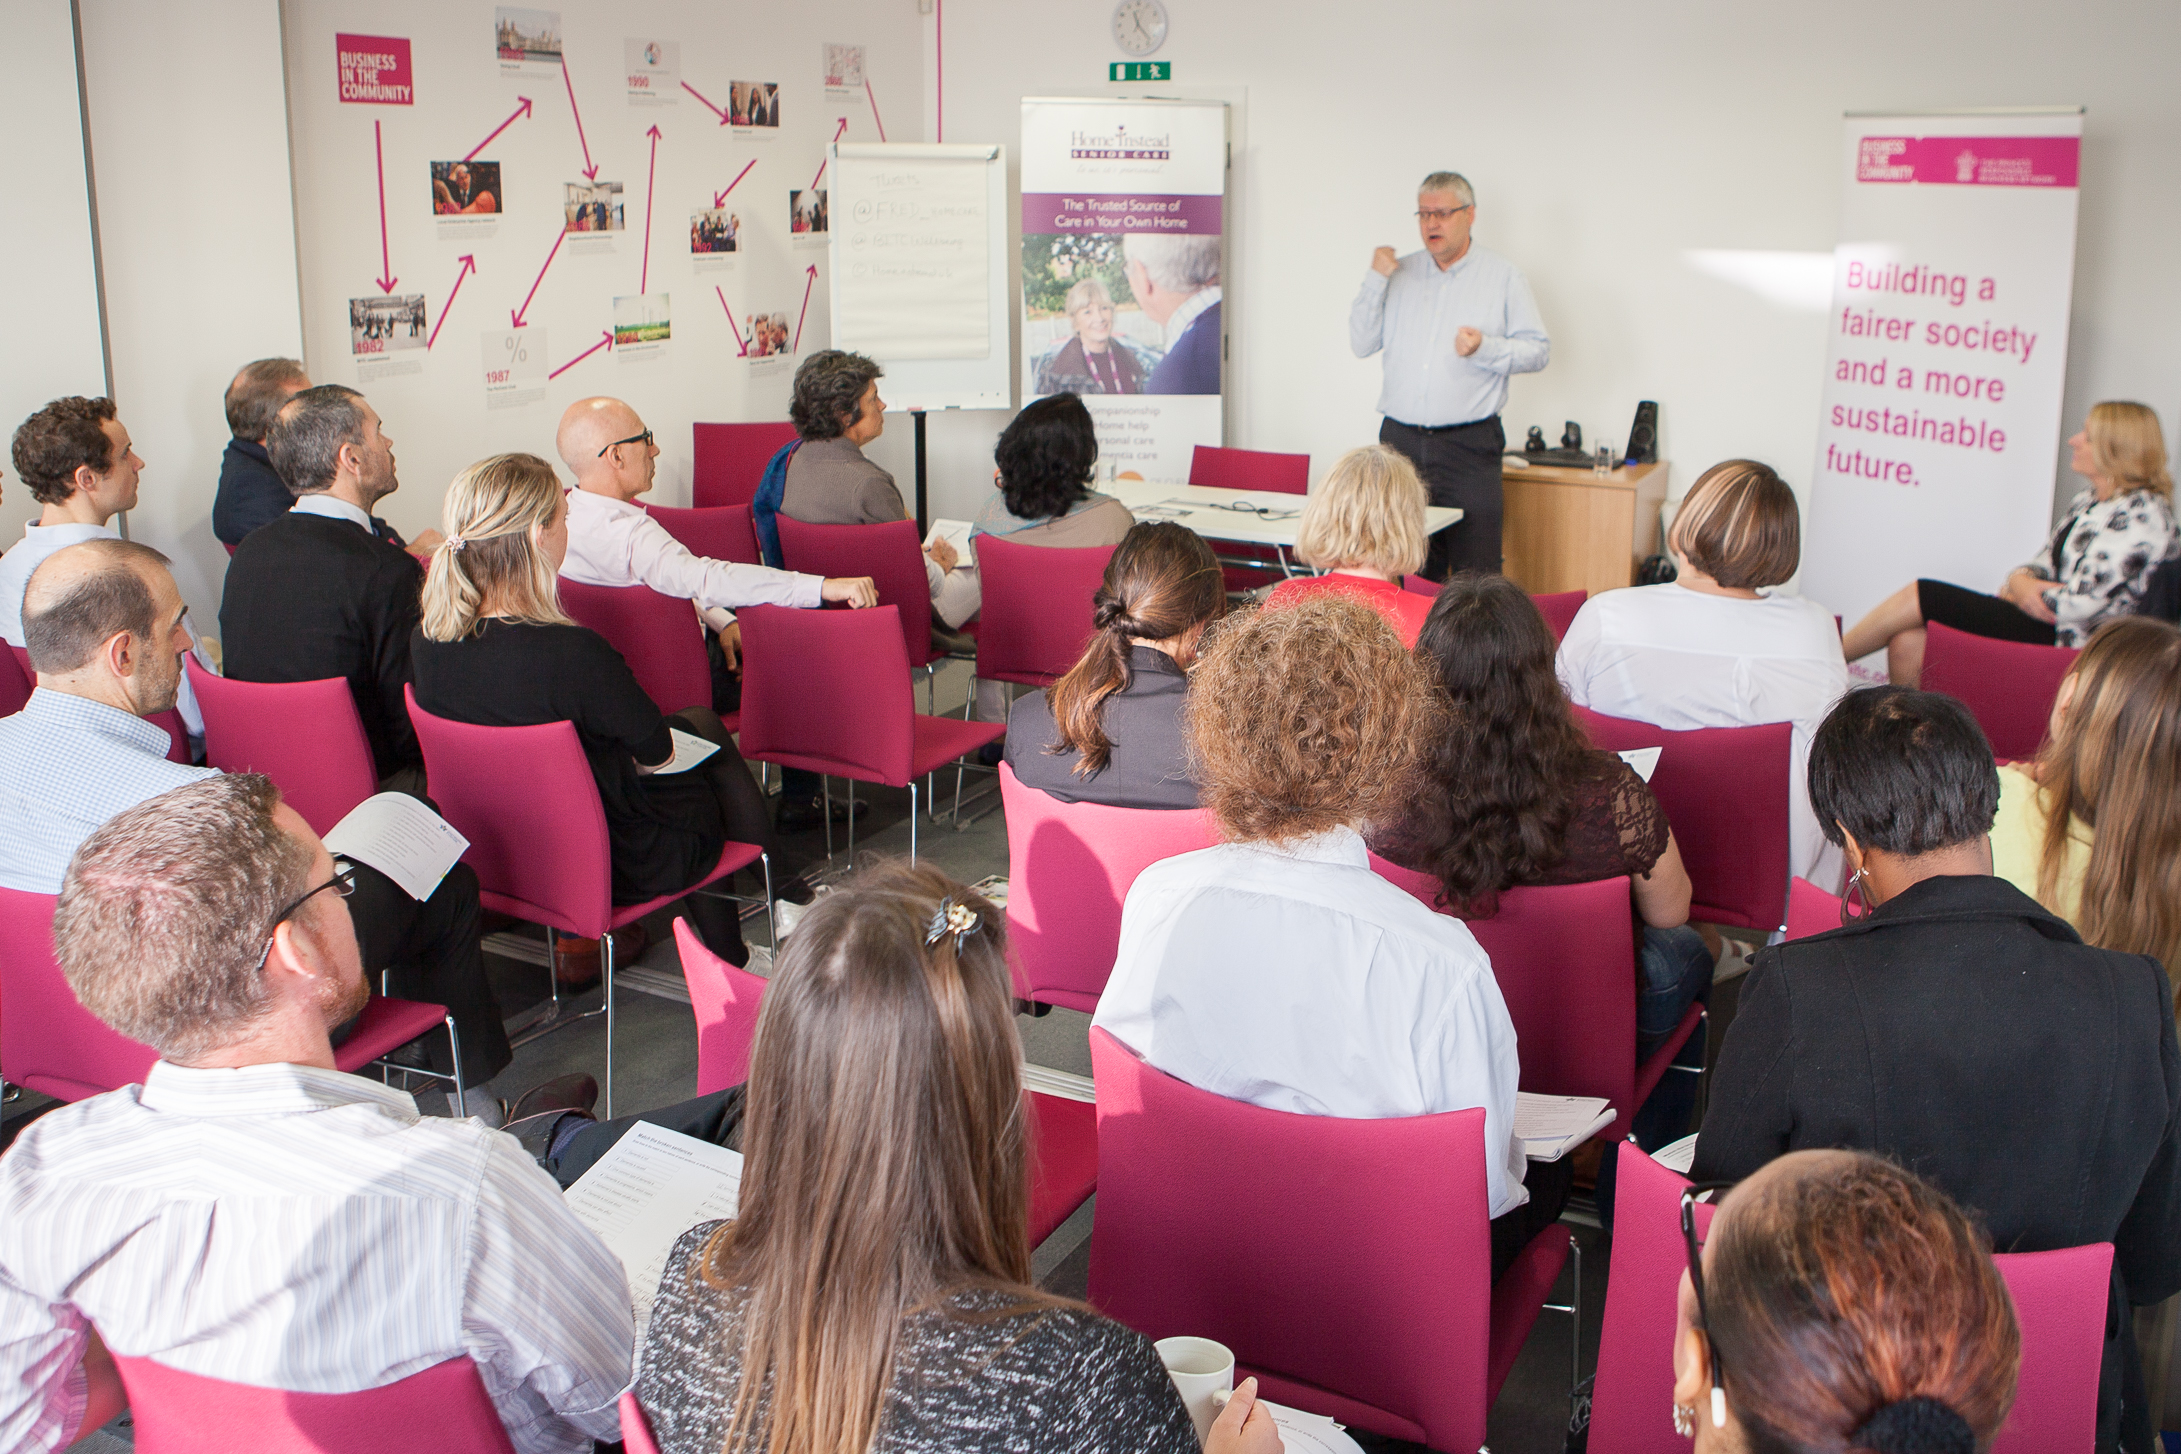 40 employees from Business in the Community (BITC) during a Home Instead Senior Care bespoke training session held at the business–led charity's London headquarters